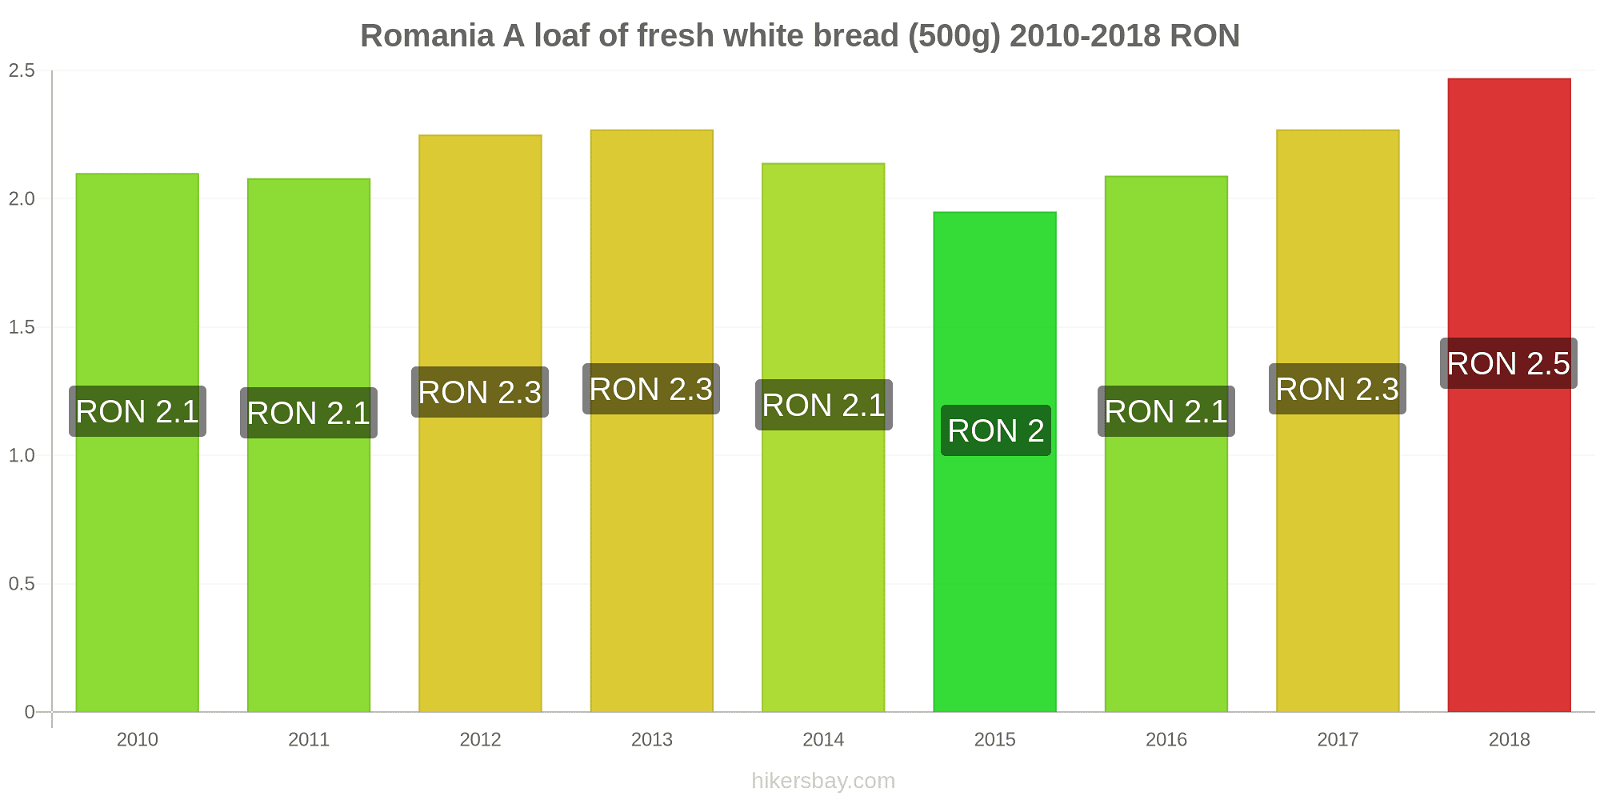 Romania price changes A loaf of fresh white bread (500g) hikersbay.com